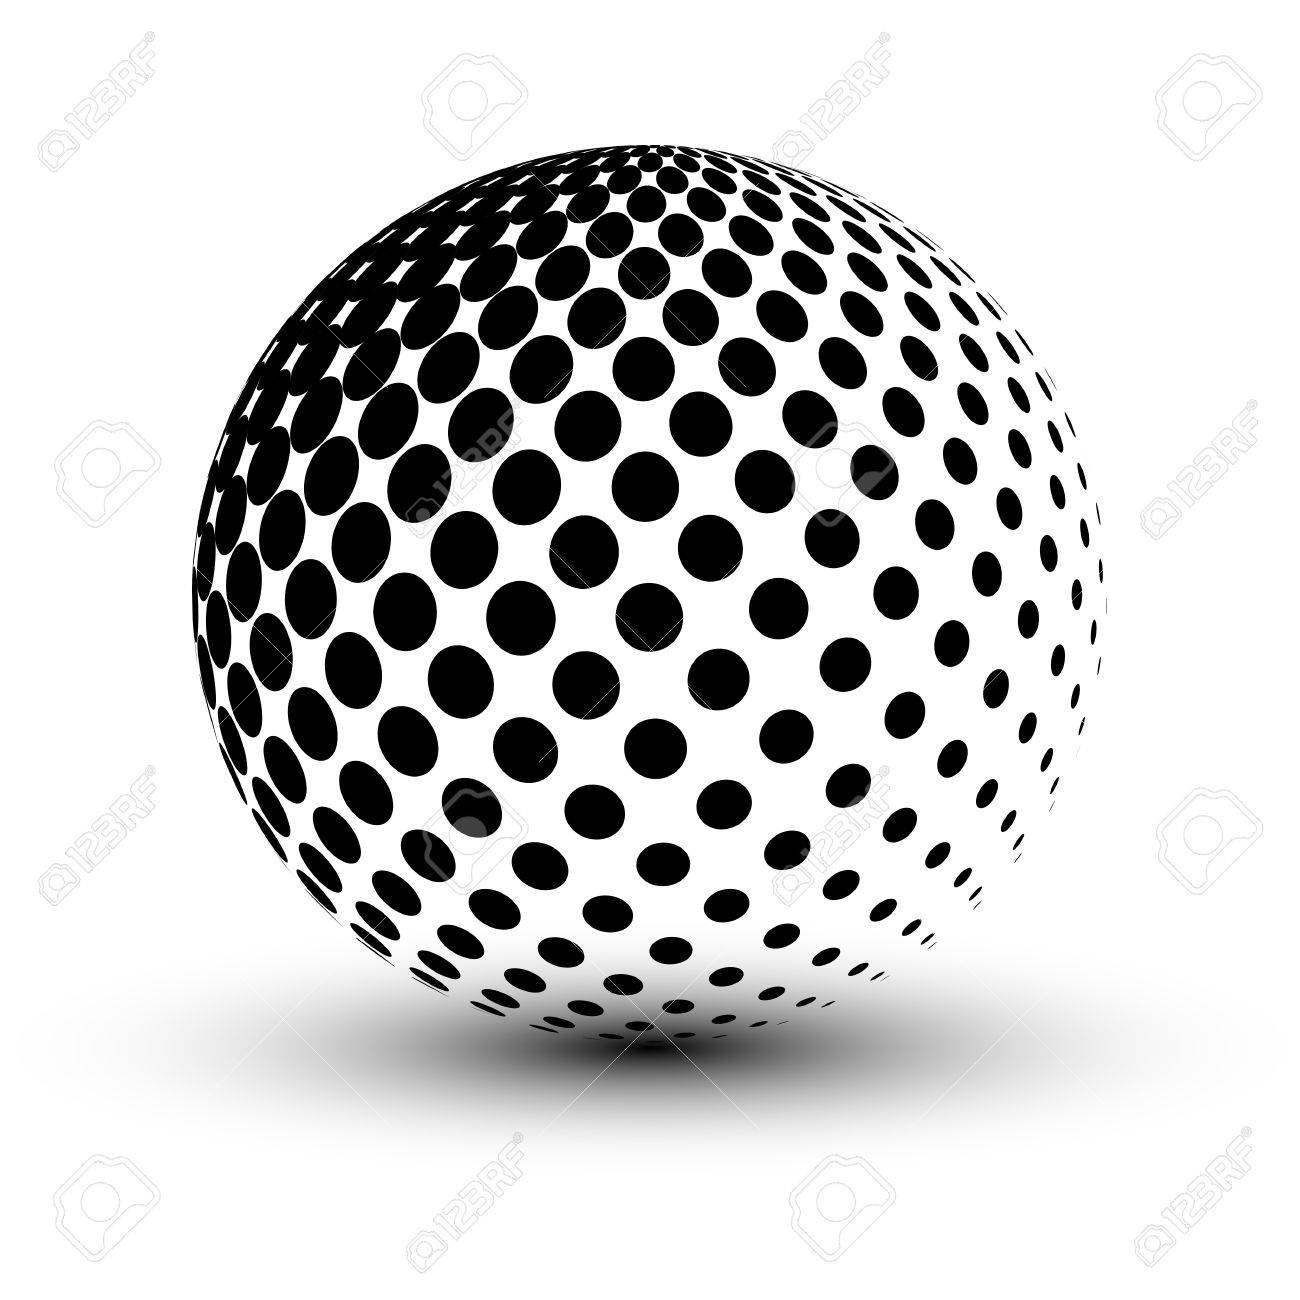 Abstract Halftone sphere, vector design. - 44225993